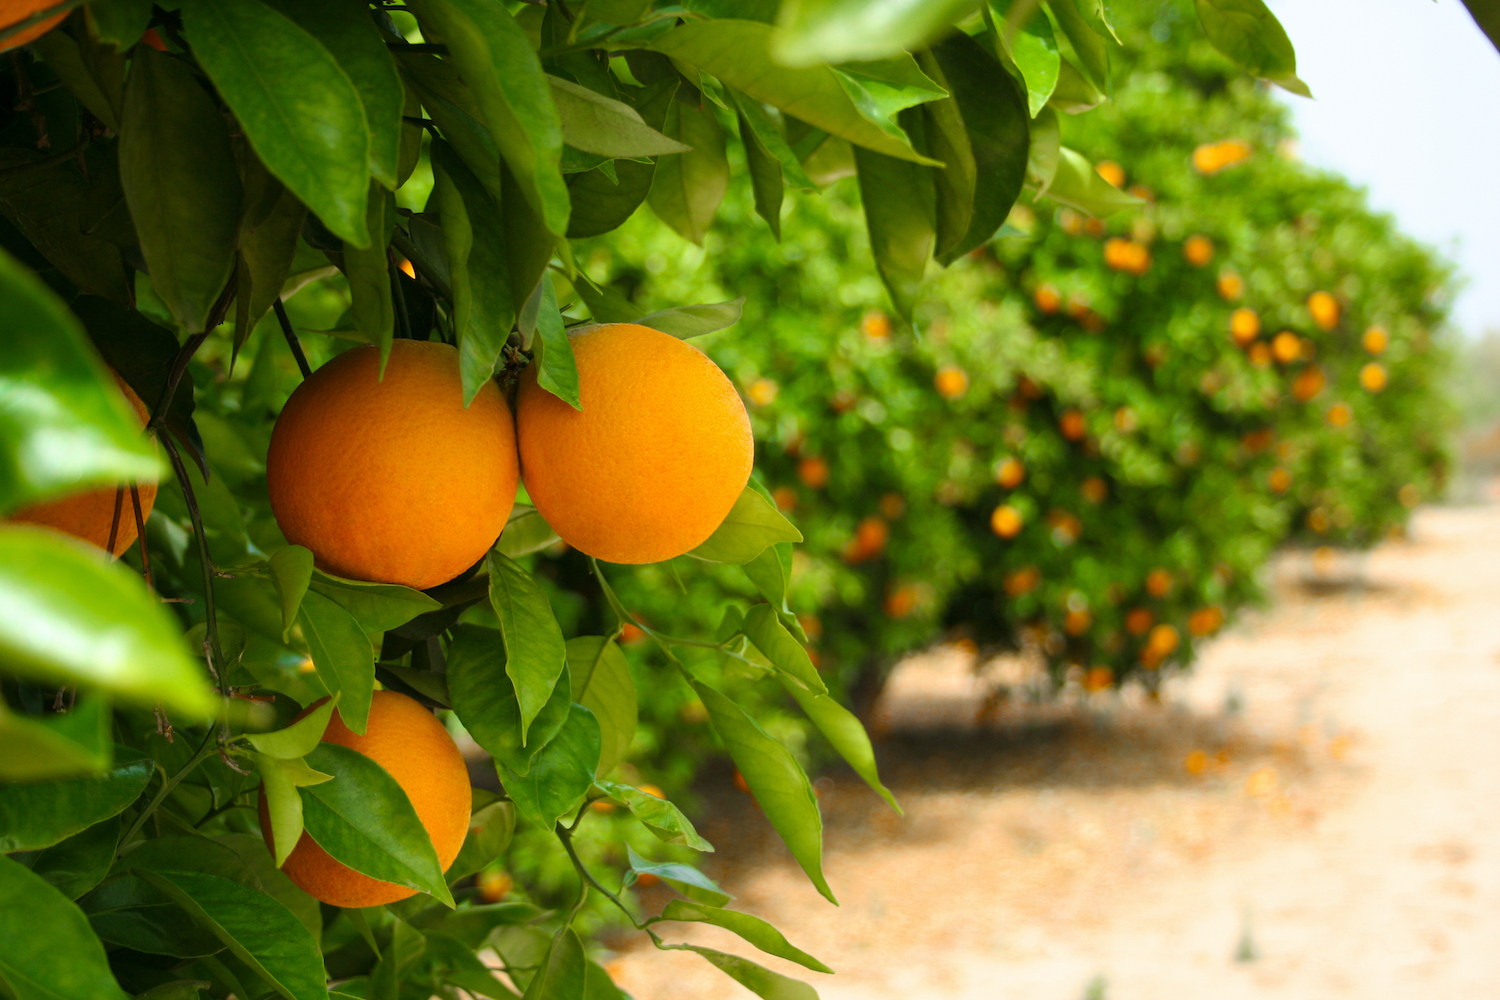 Oranges in a line of green trees